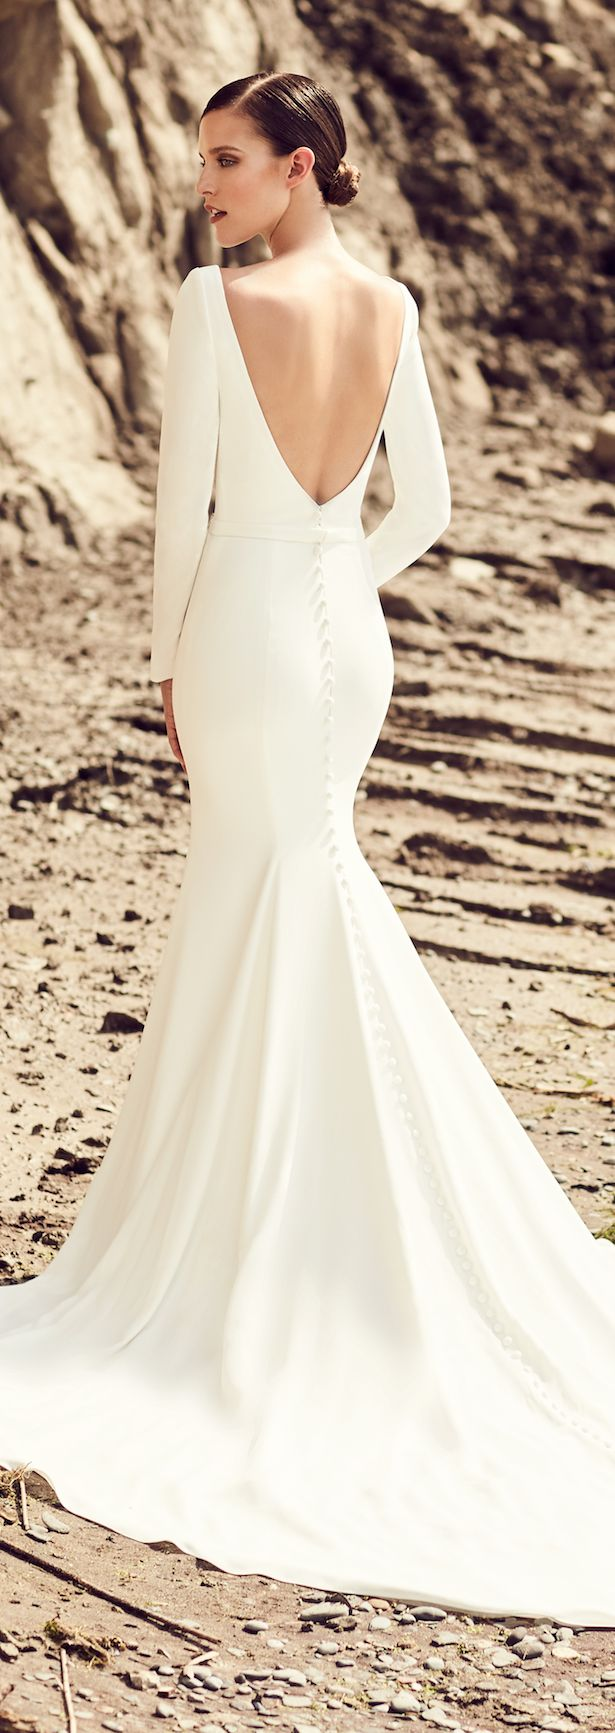 Bateau White Satin Mermaid Wedding Dress With Long Sleeves And Open Back Cowl Back Wedding Dress Sleek Wedding Dress Wedding Dress Silhouette [ 1920 x 1280 Pixel ]